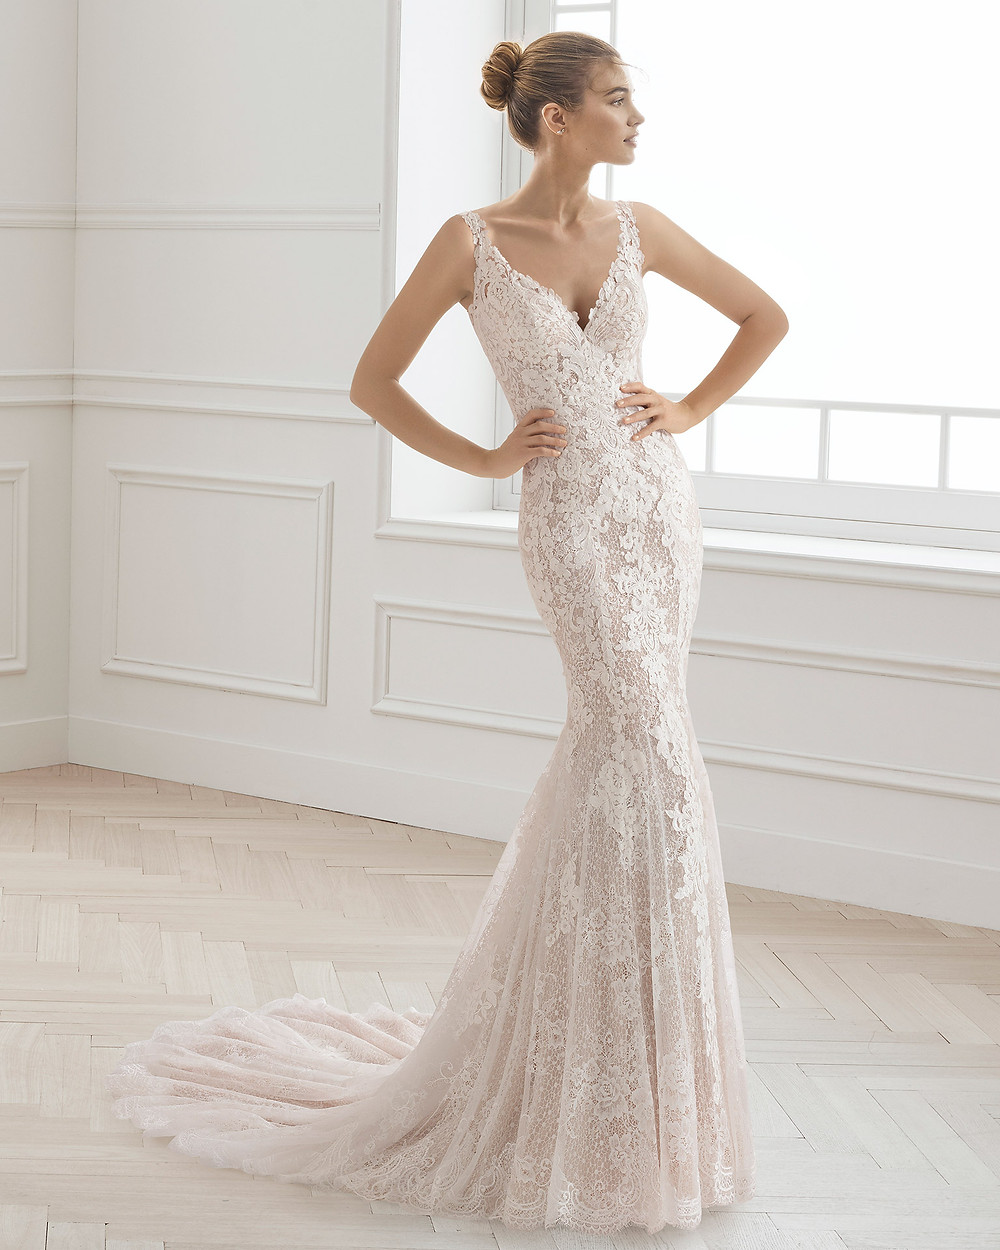 An Aire Barcelona 2020 blush lace mermaid wedding dress with a v neck